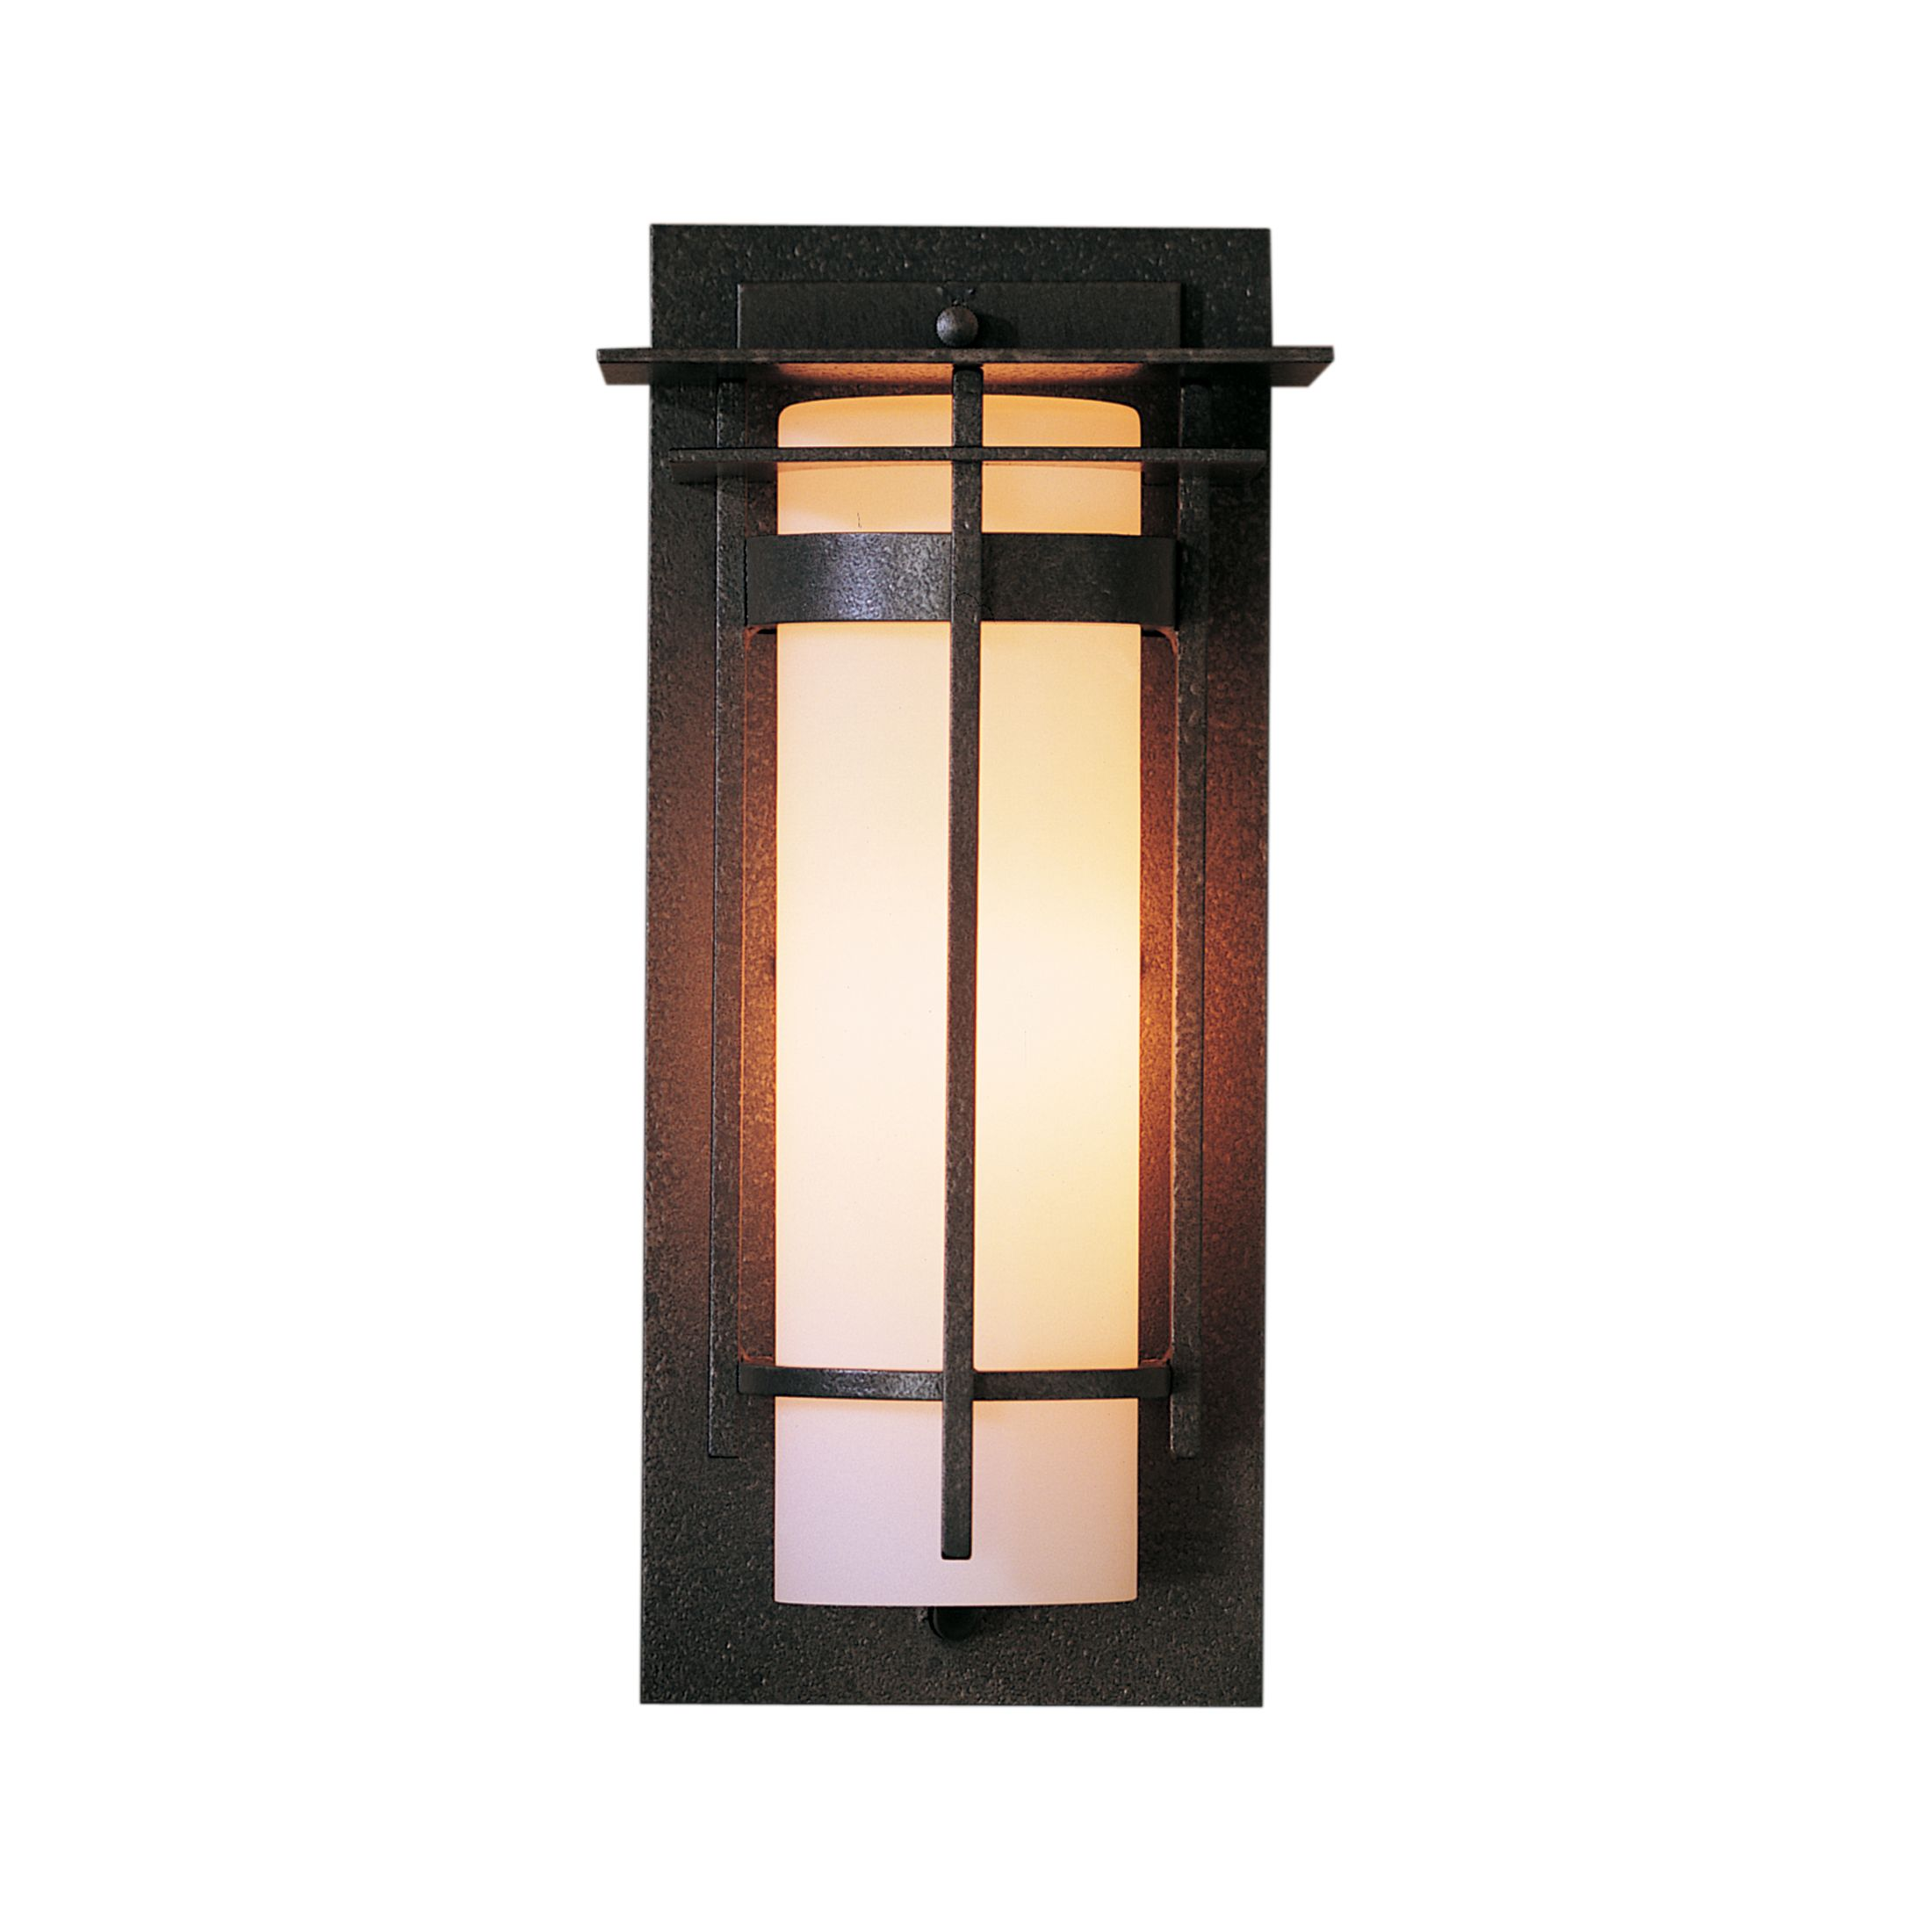 Thumbnail for Banded with Top Plate Small Interior Sconce